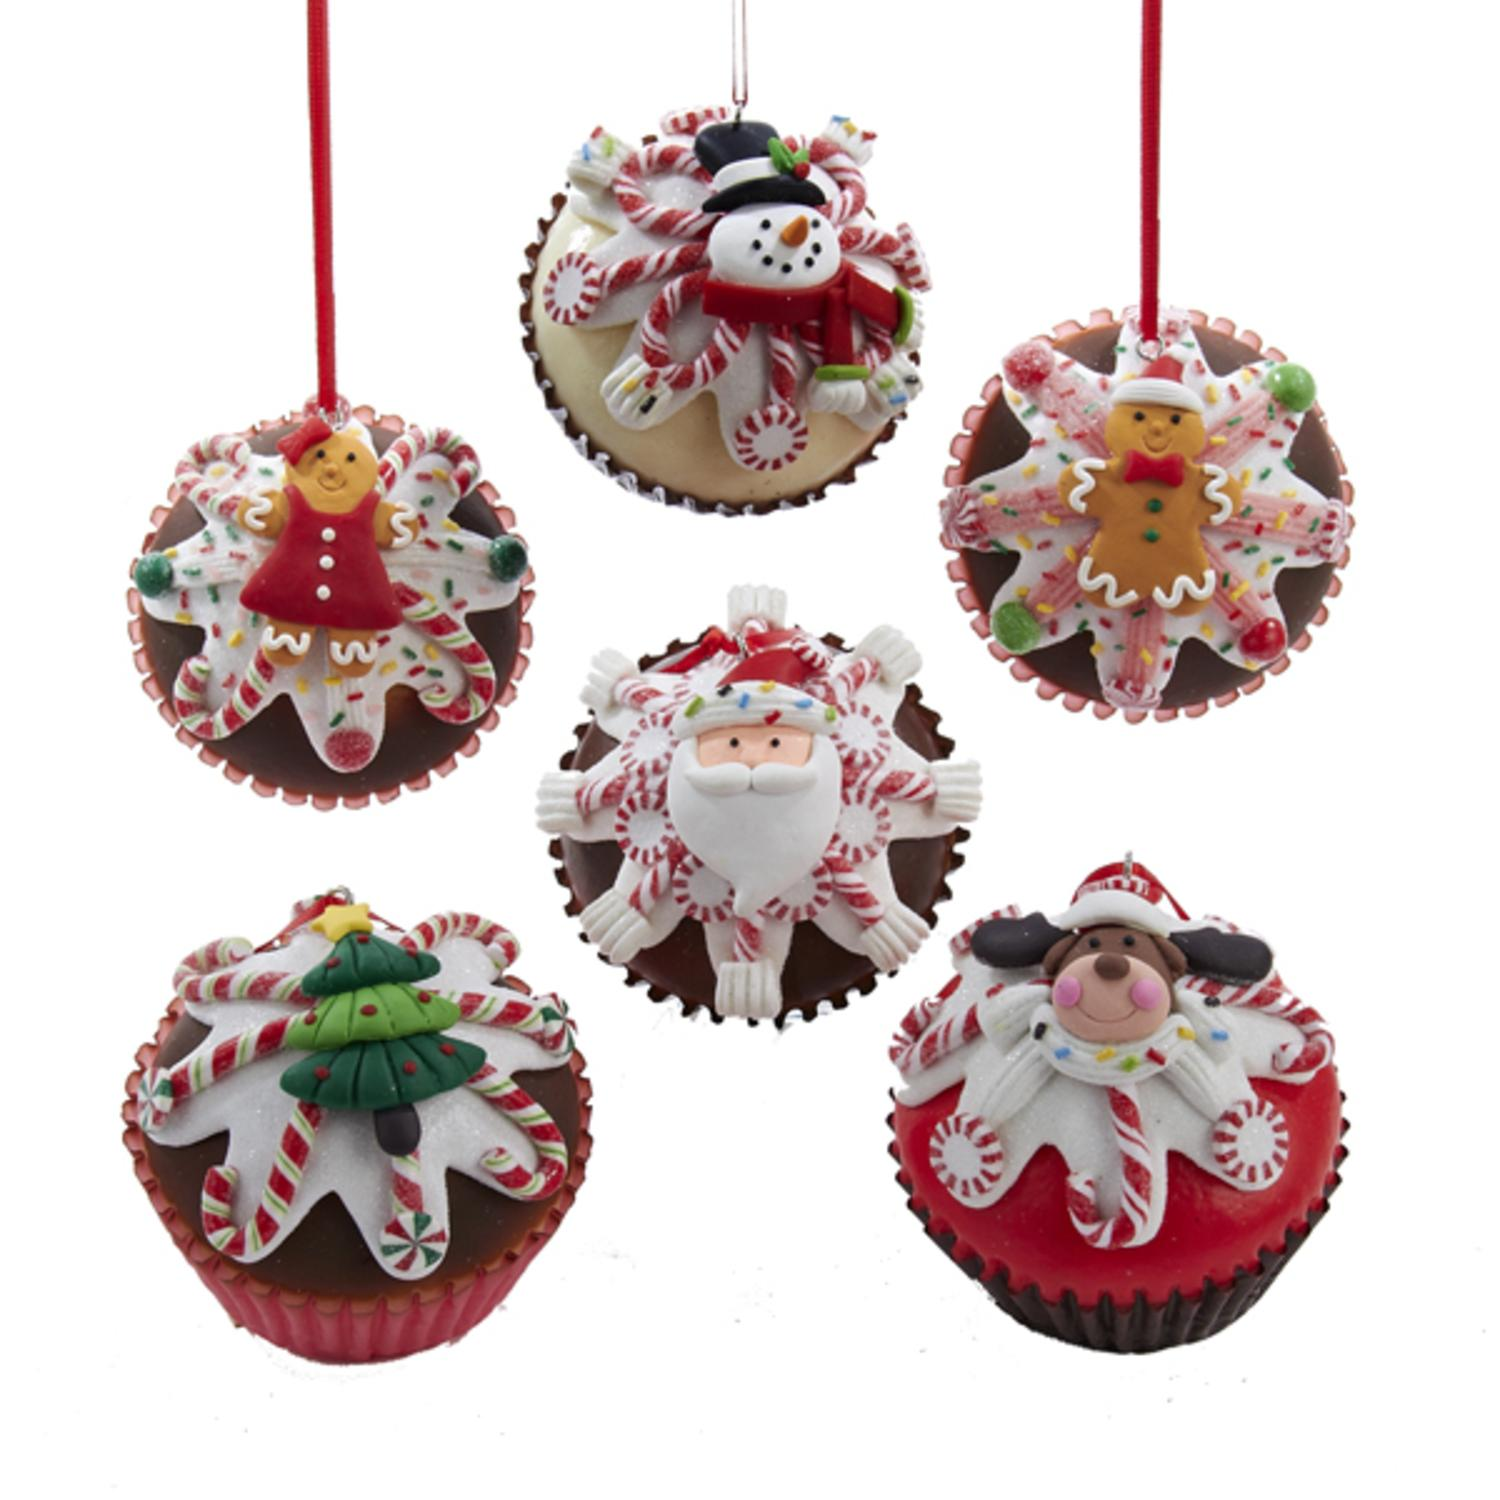 Club Pack of 12 Assorted Cupcake Heaven Christmas Ornaments 2.75""